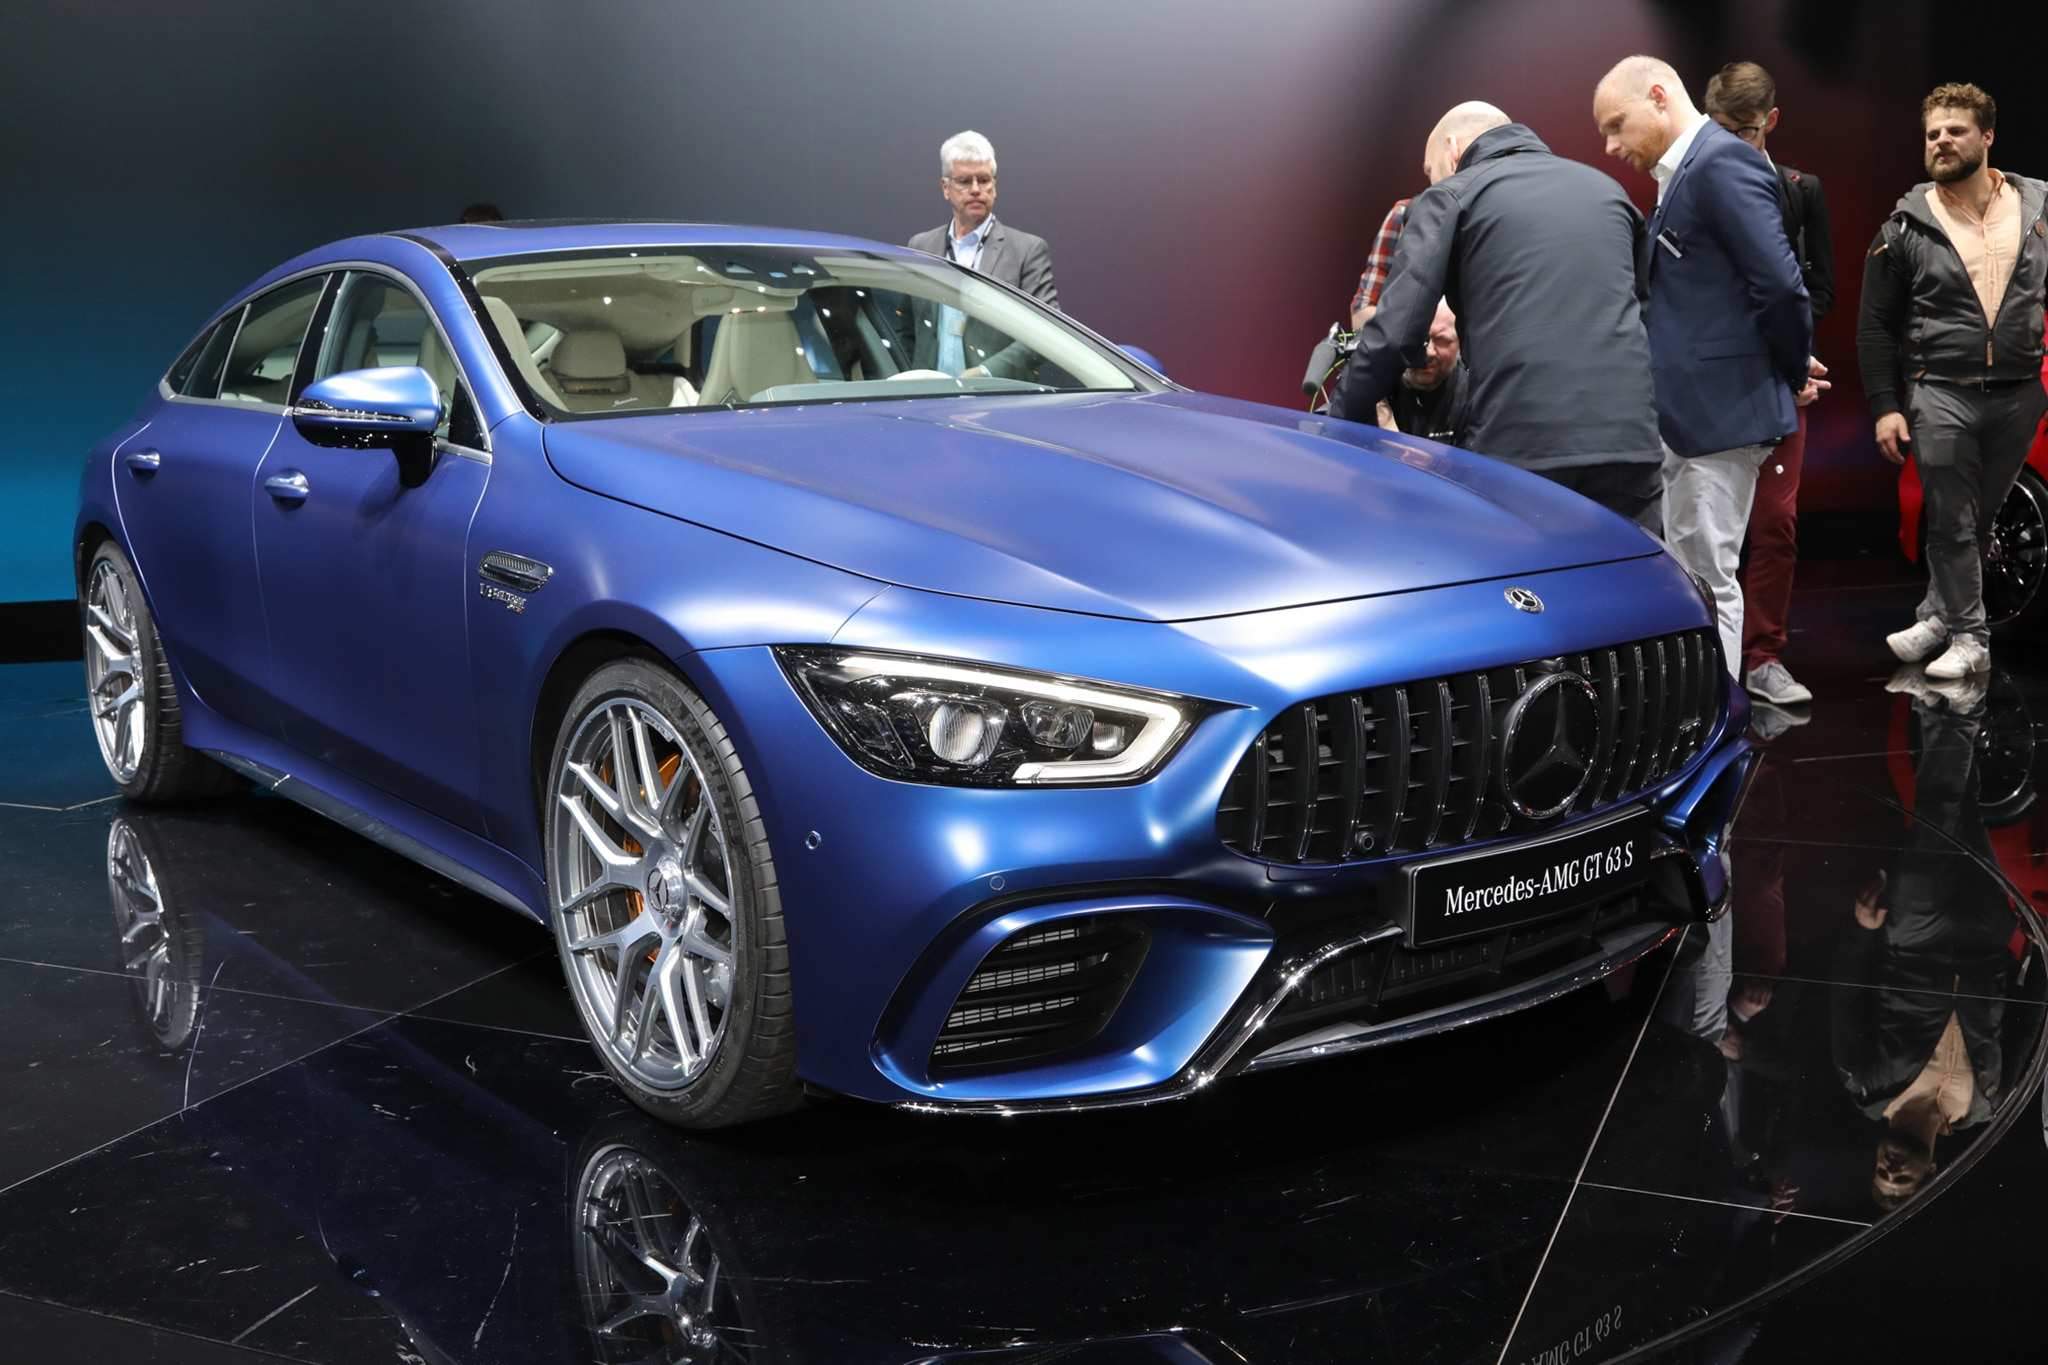 61 Great Mercedes 2019 Amg Gt Spy Shoot for Mercedes 2019 Amg Gt